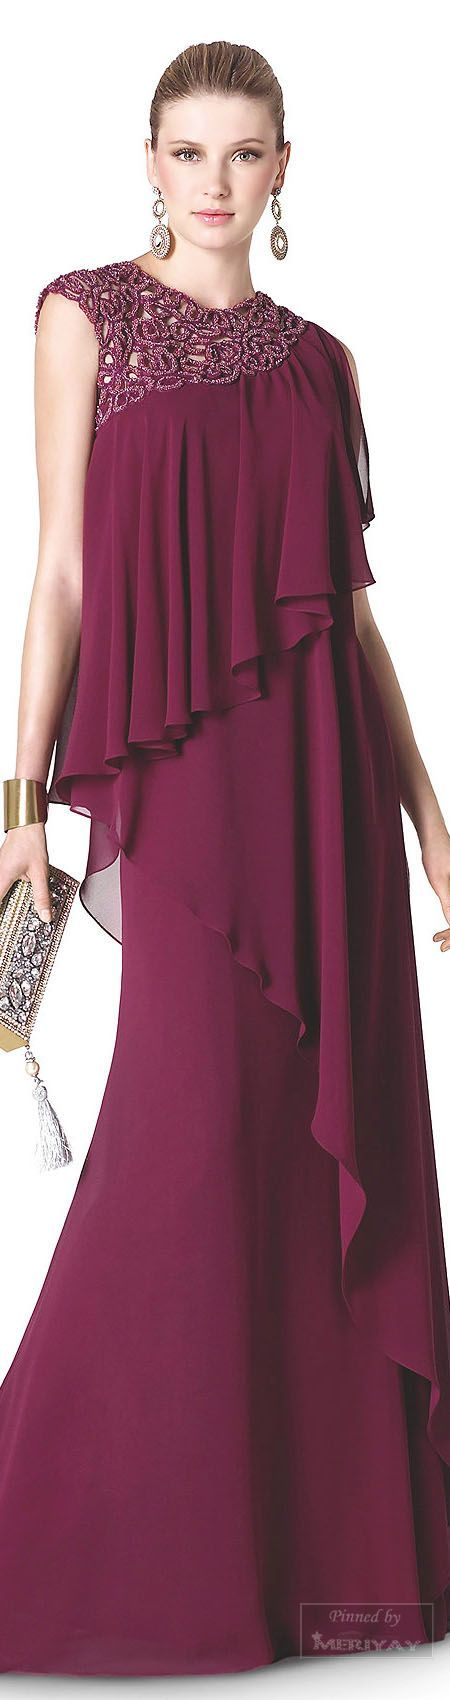 @roressclothes clothing ideas #women fashion purple maxi dress gown